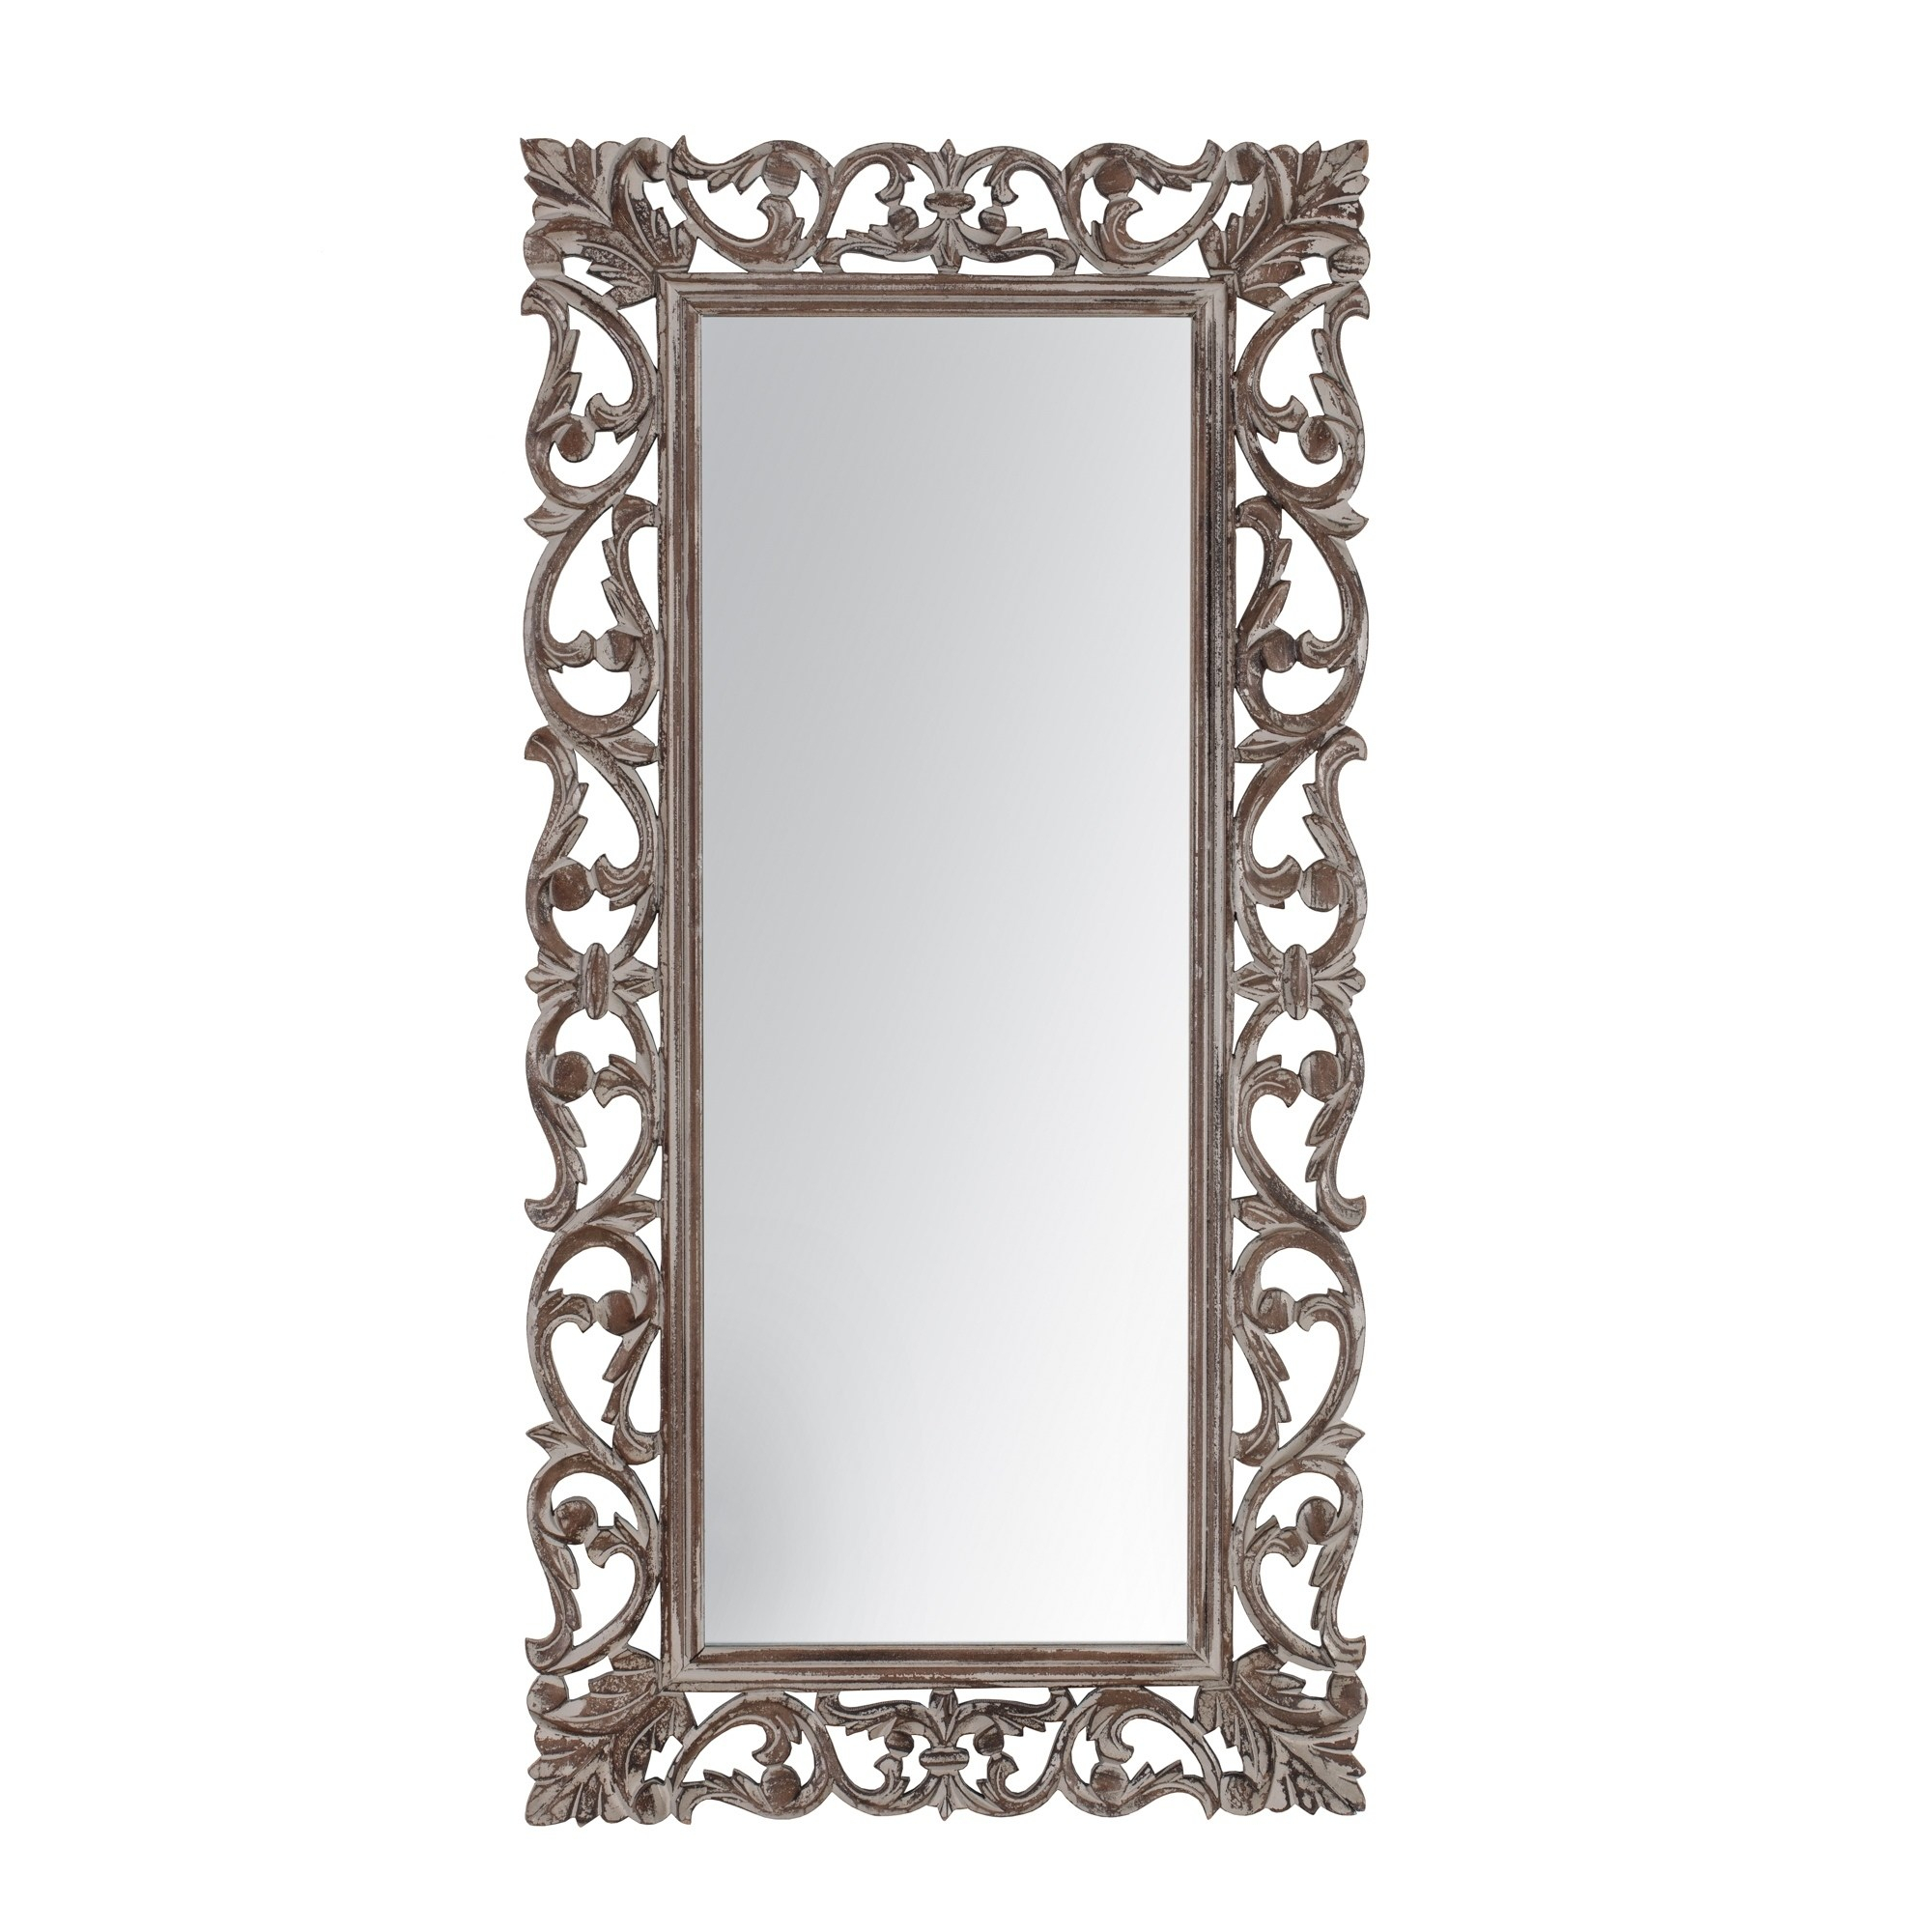 "Passo Grey Carved Mirror 18""x36"" – A/n, Gray, Madeleine Home In Dedrick Decorative Framed Modern And Contemporary Wall Mirrors (View 14 of 20)"